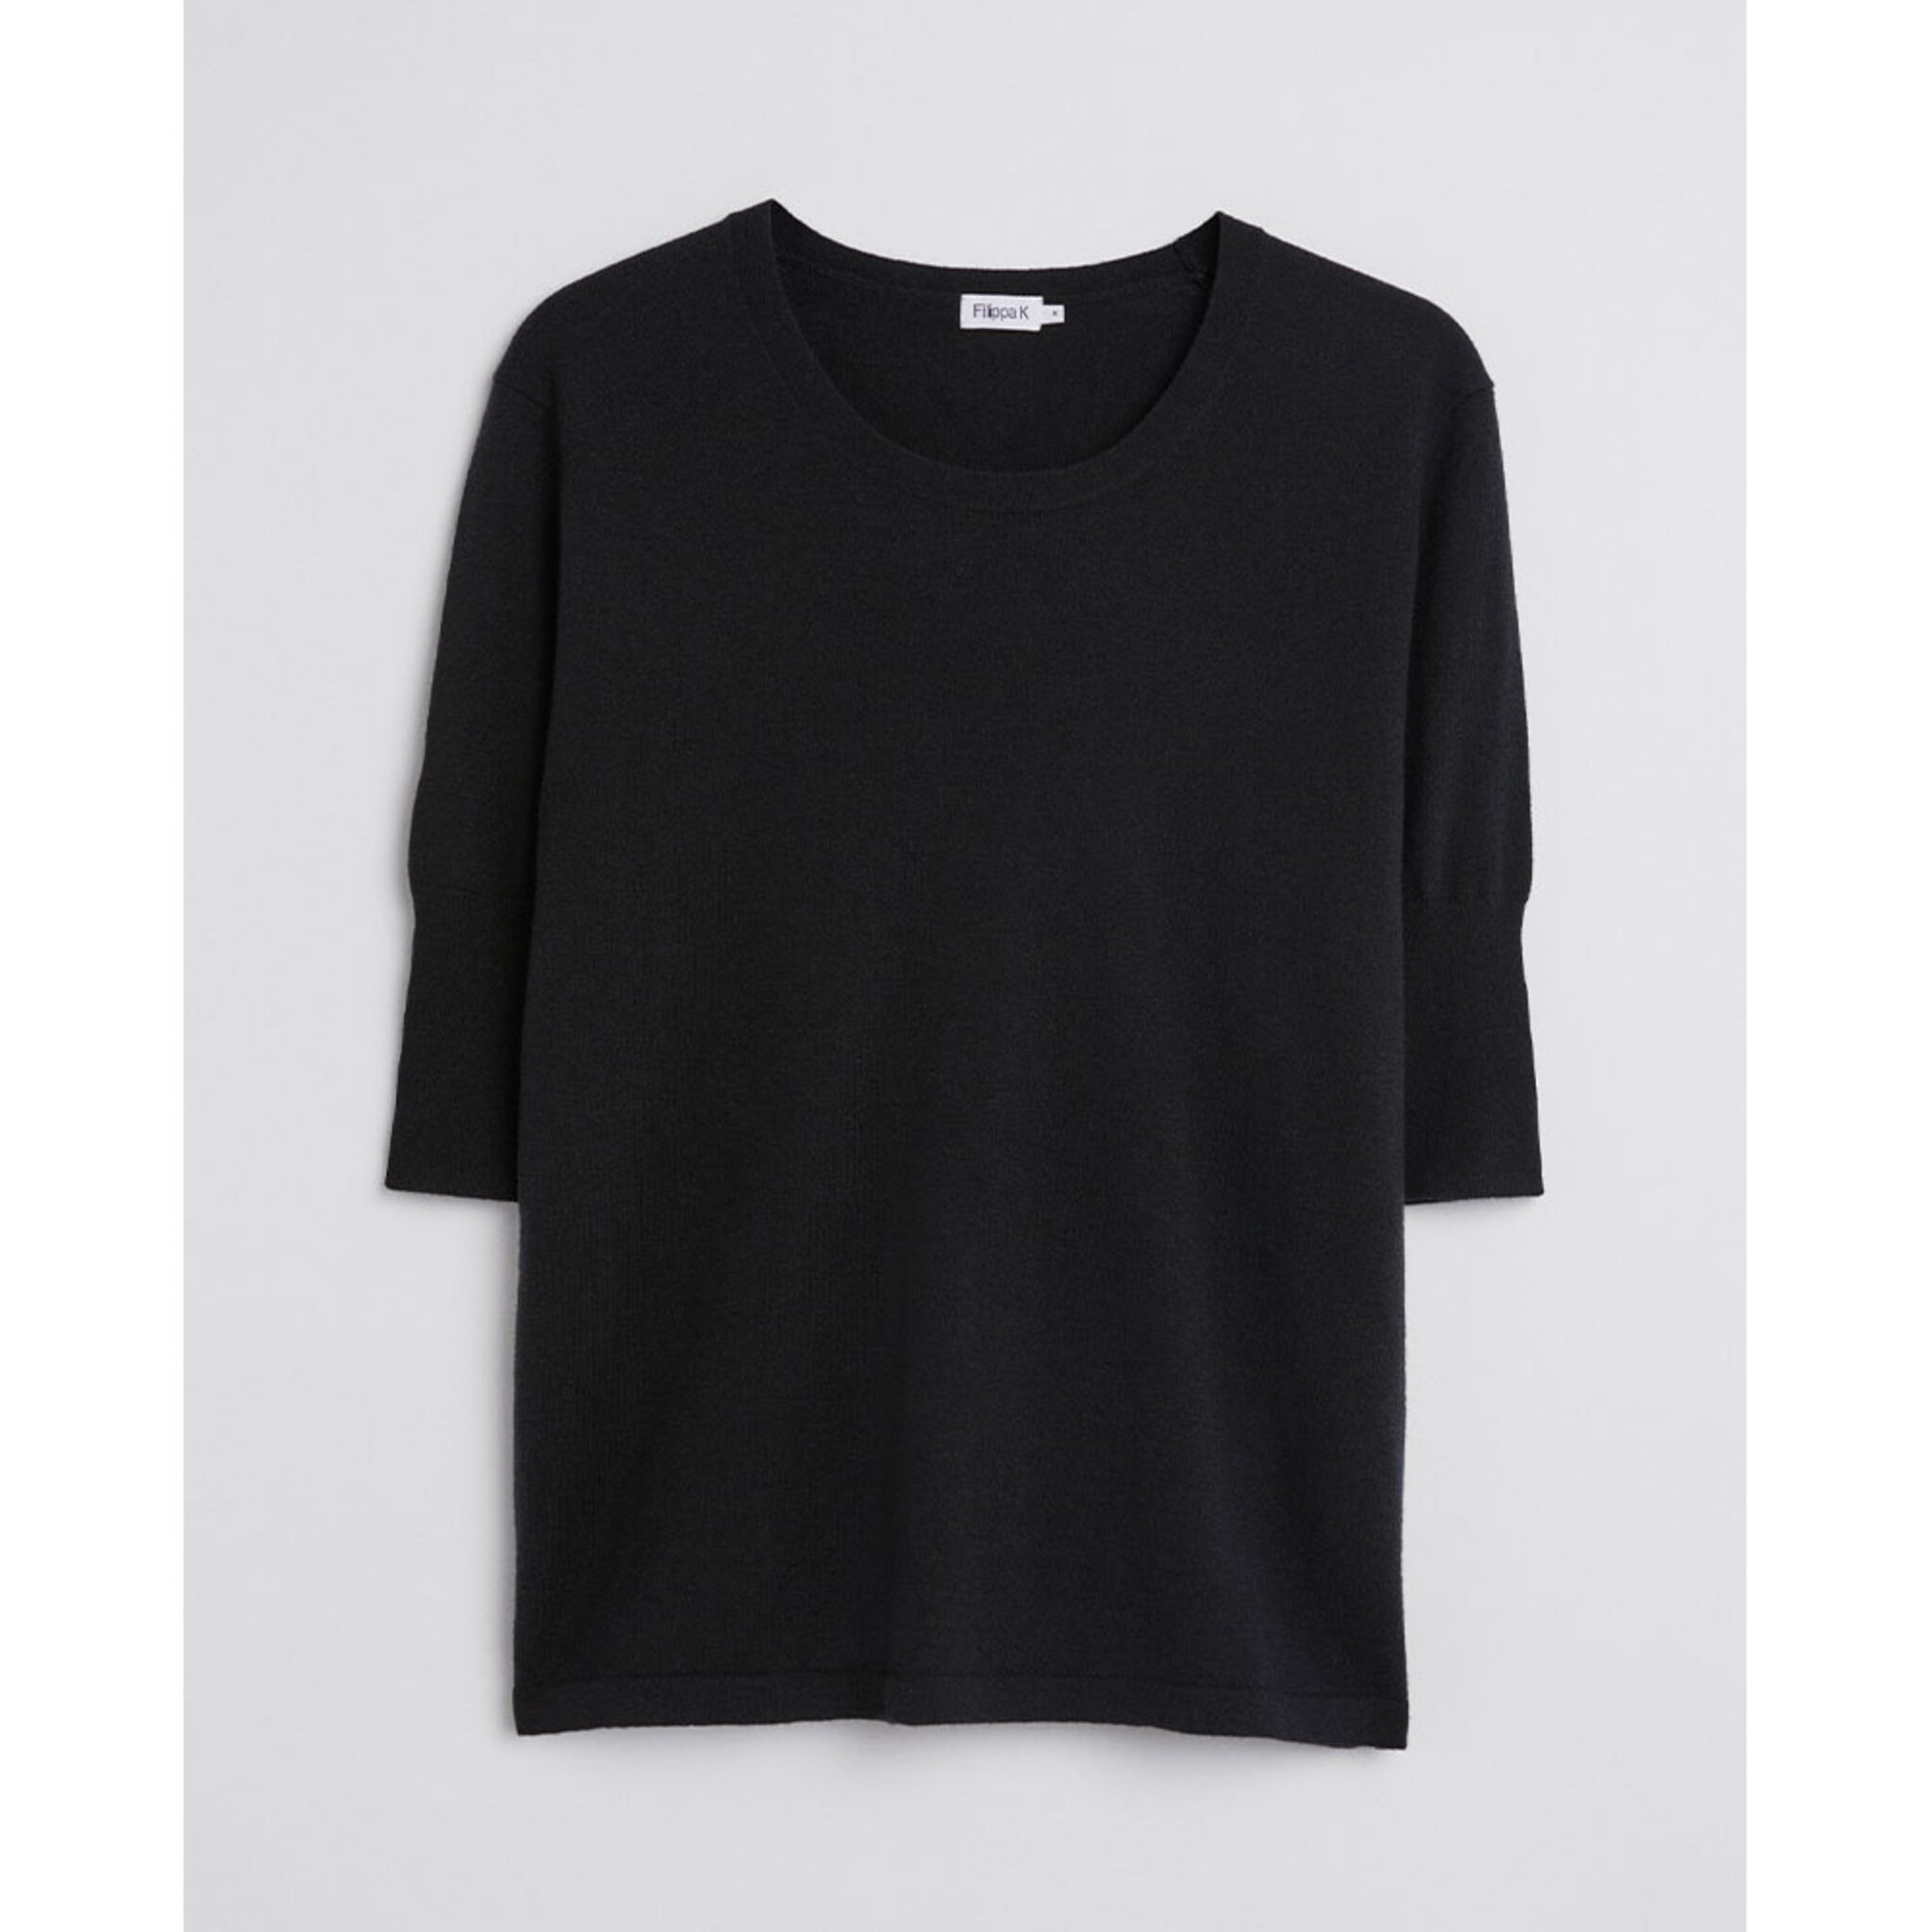 Claire Elbow Sleeve Top